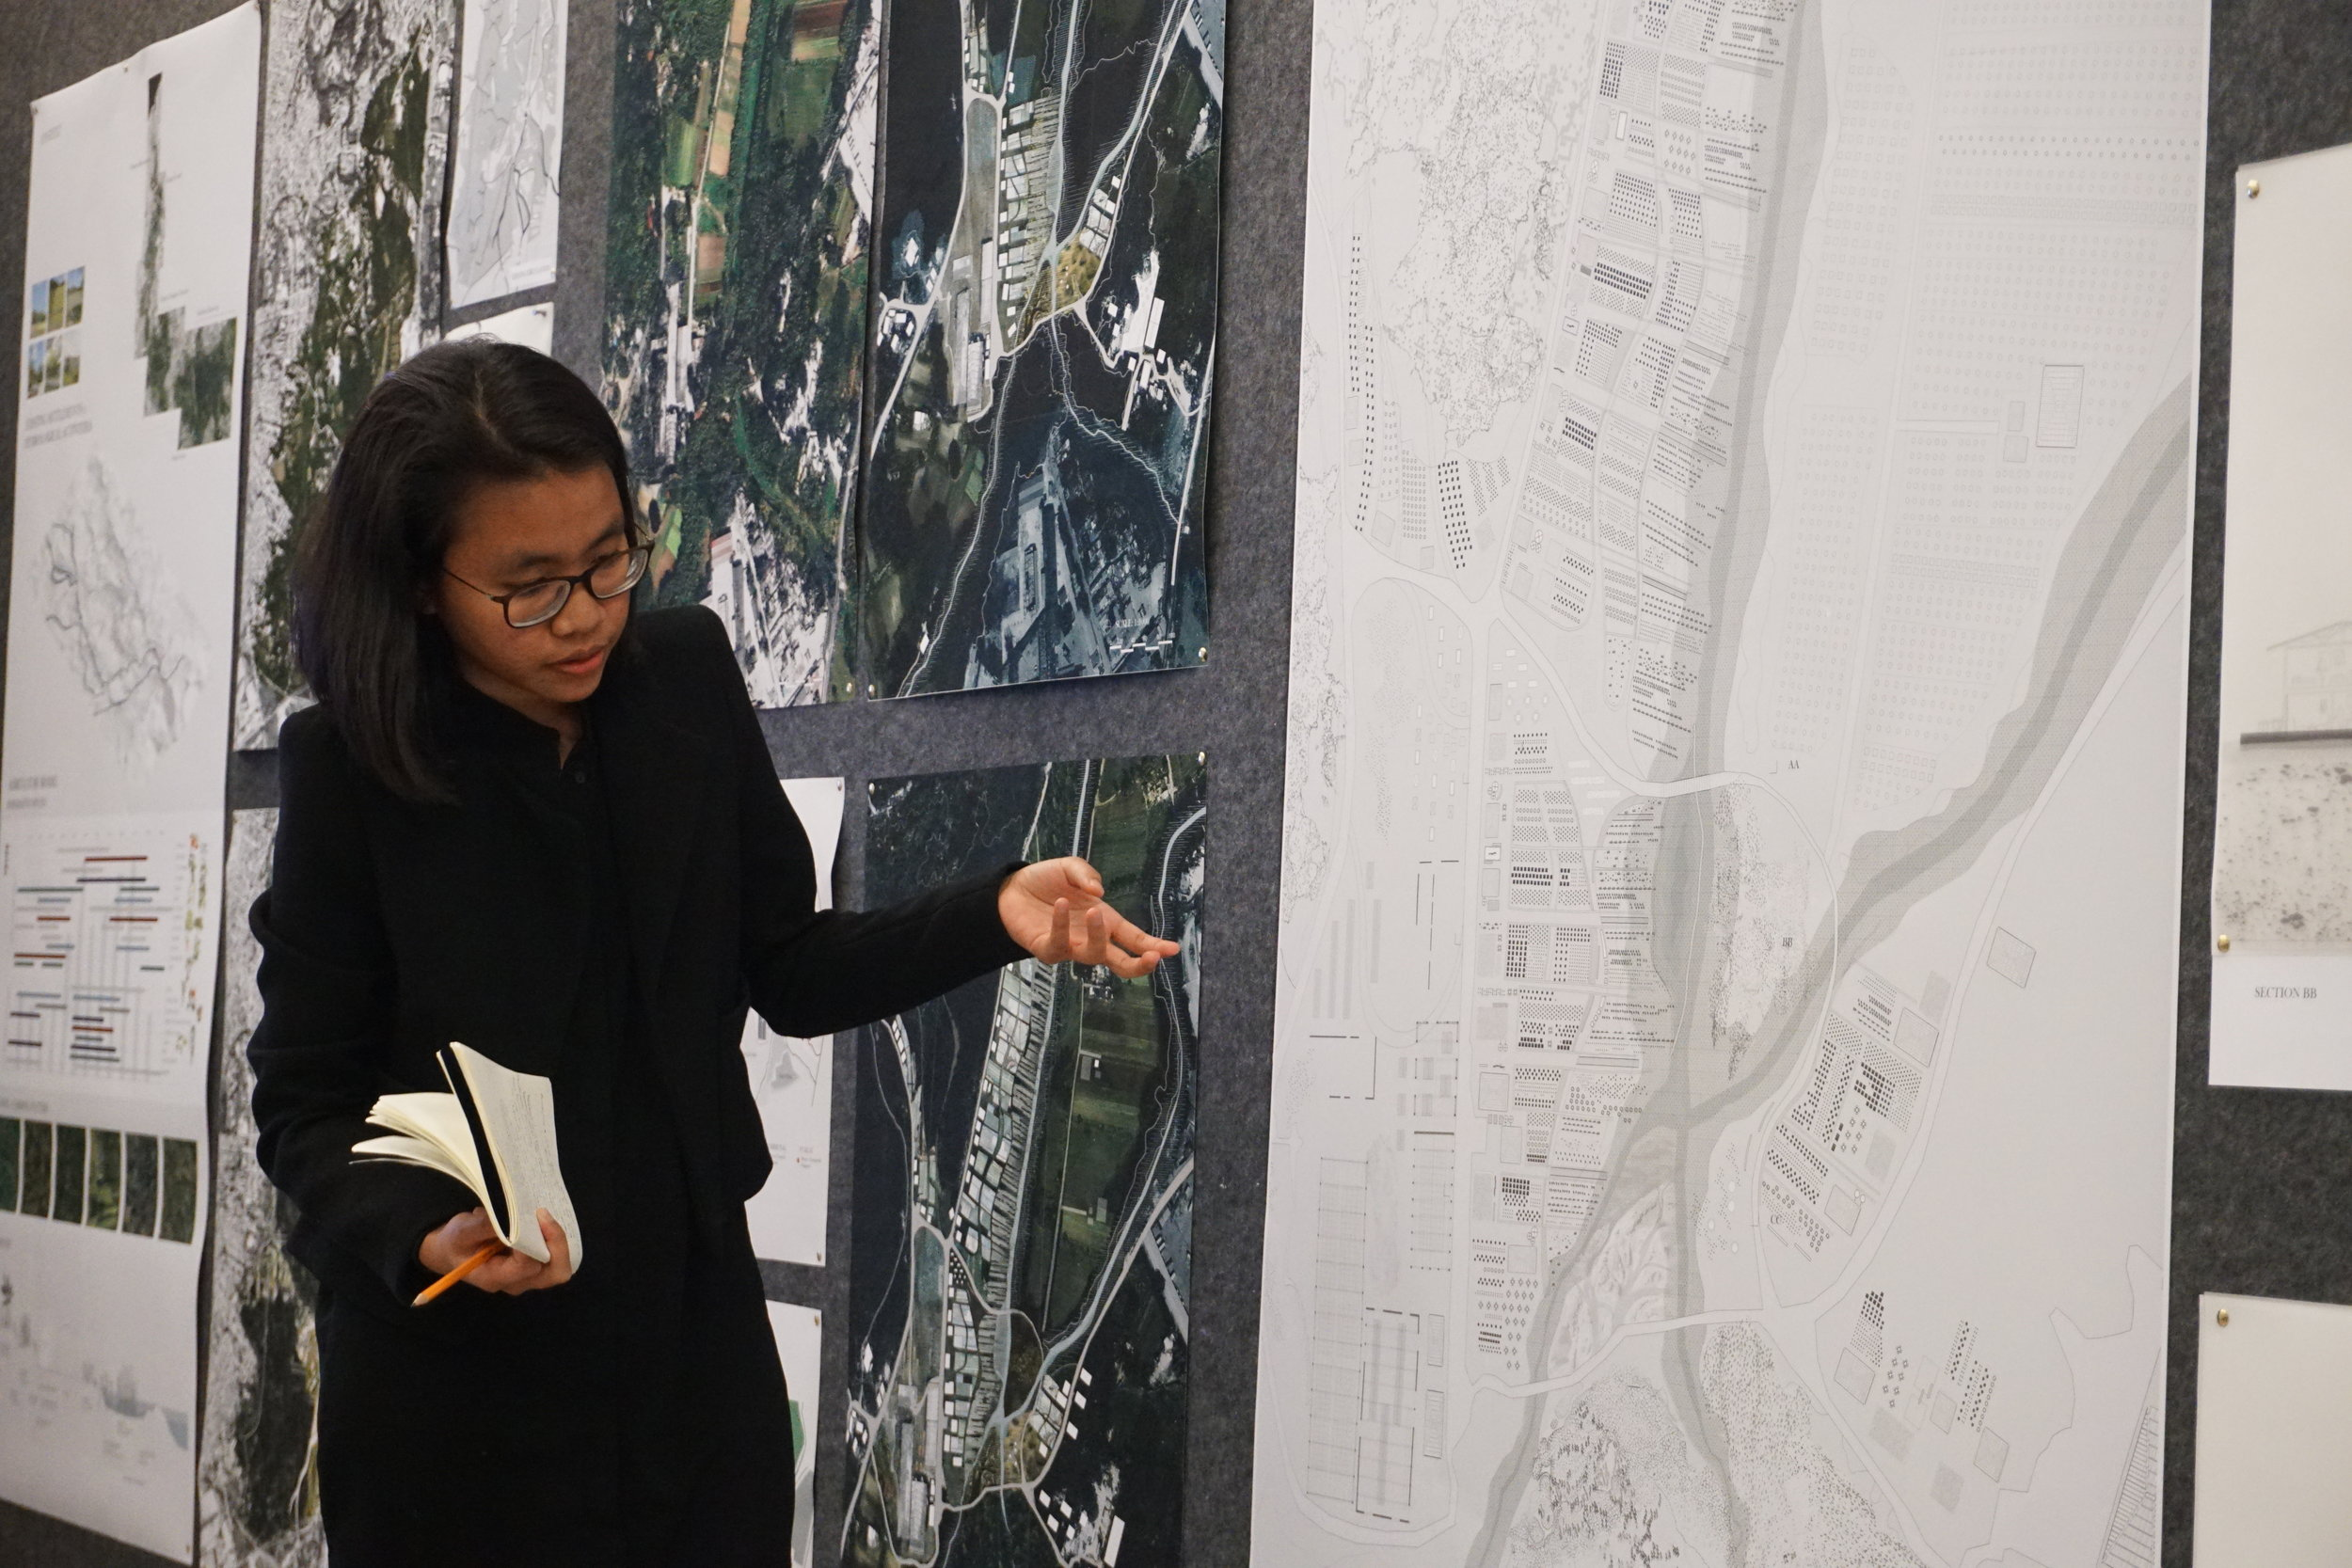 Thanh at a studio final review, 2017